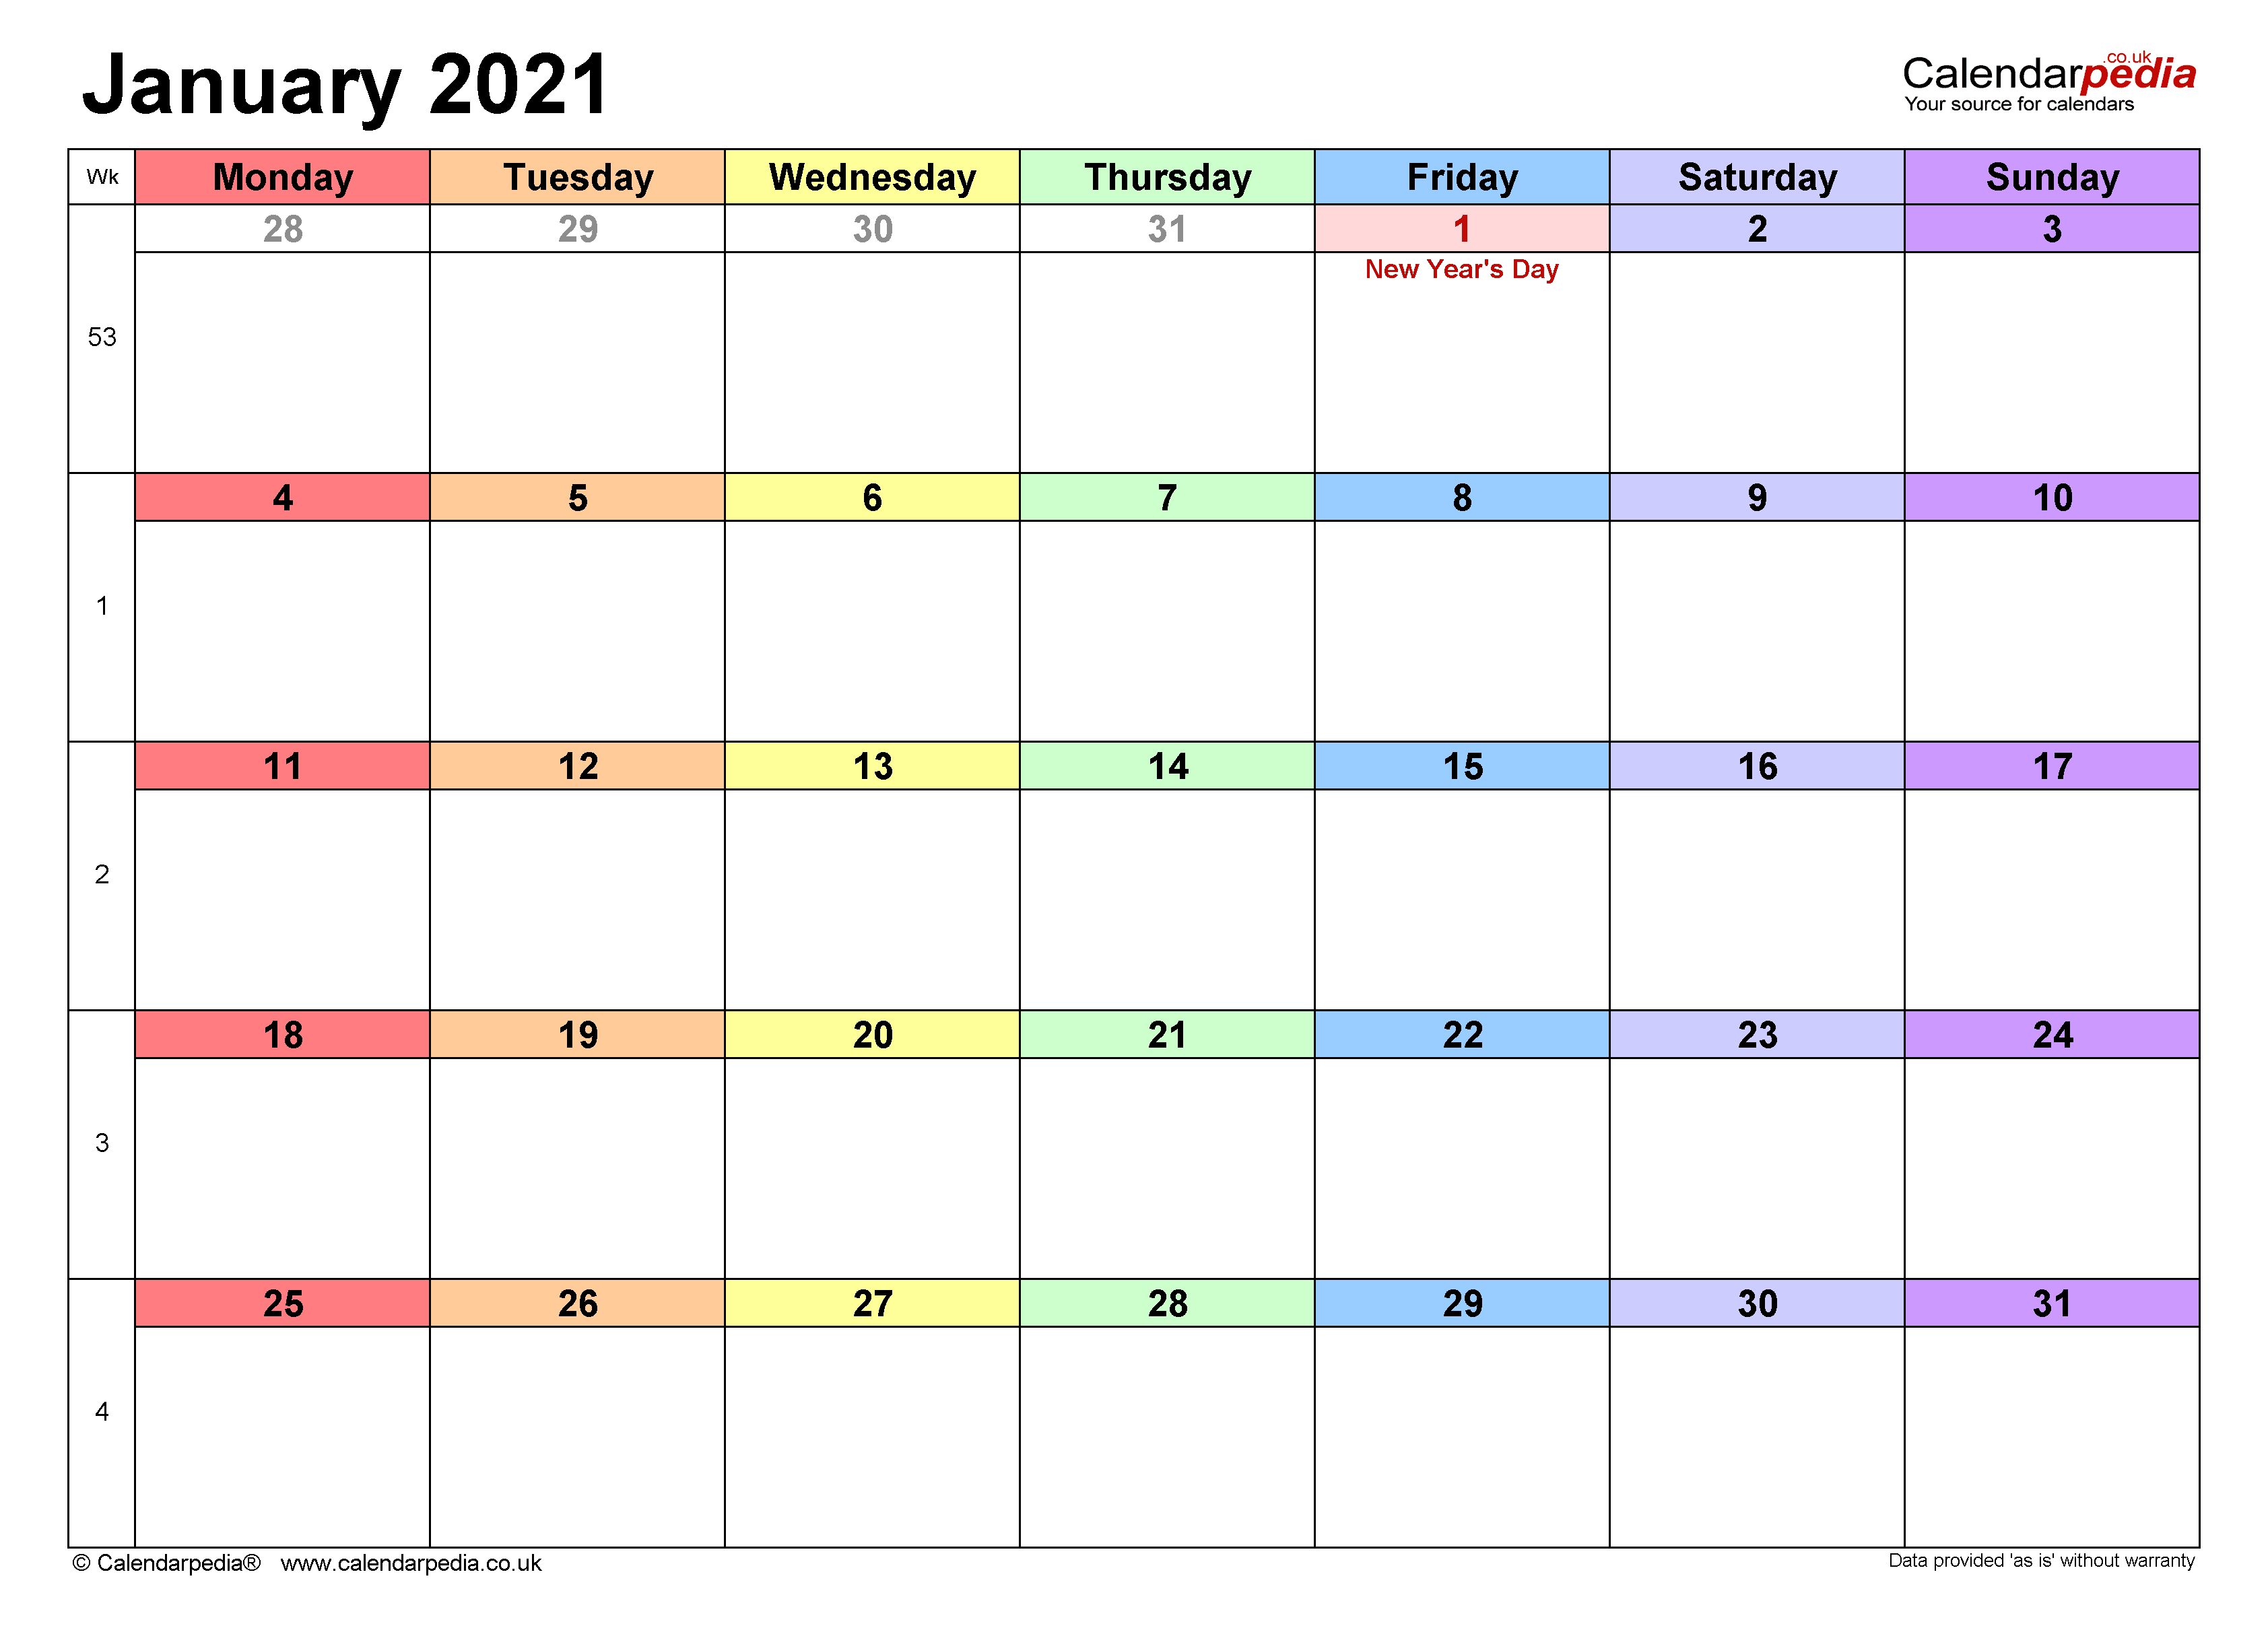 Calendar January 2021 Uk With Excel, Word And Pdf Templates